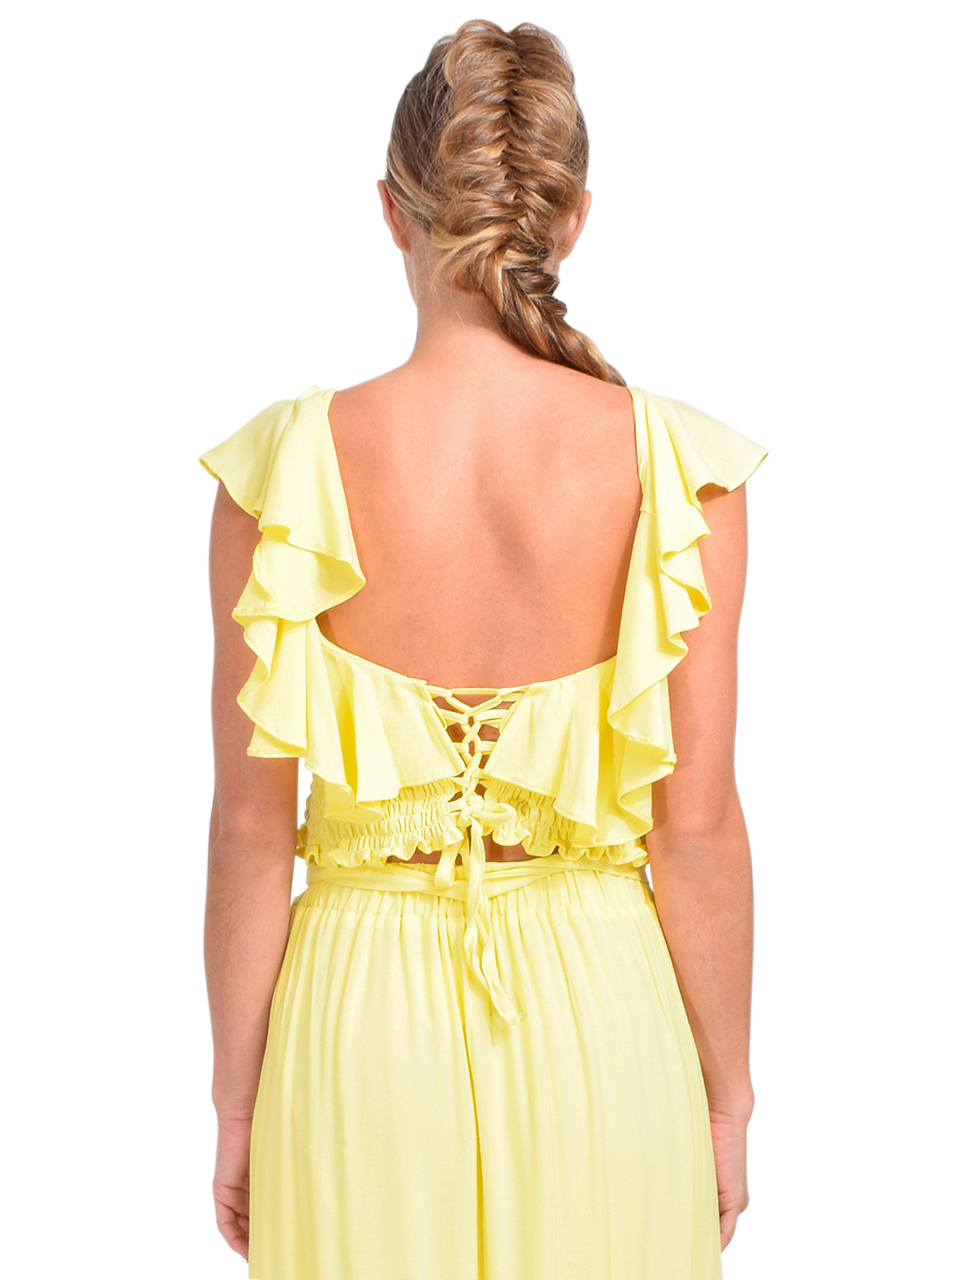 KASIA Sifnos Crop Top in Yellow Back View 2